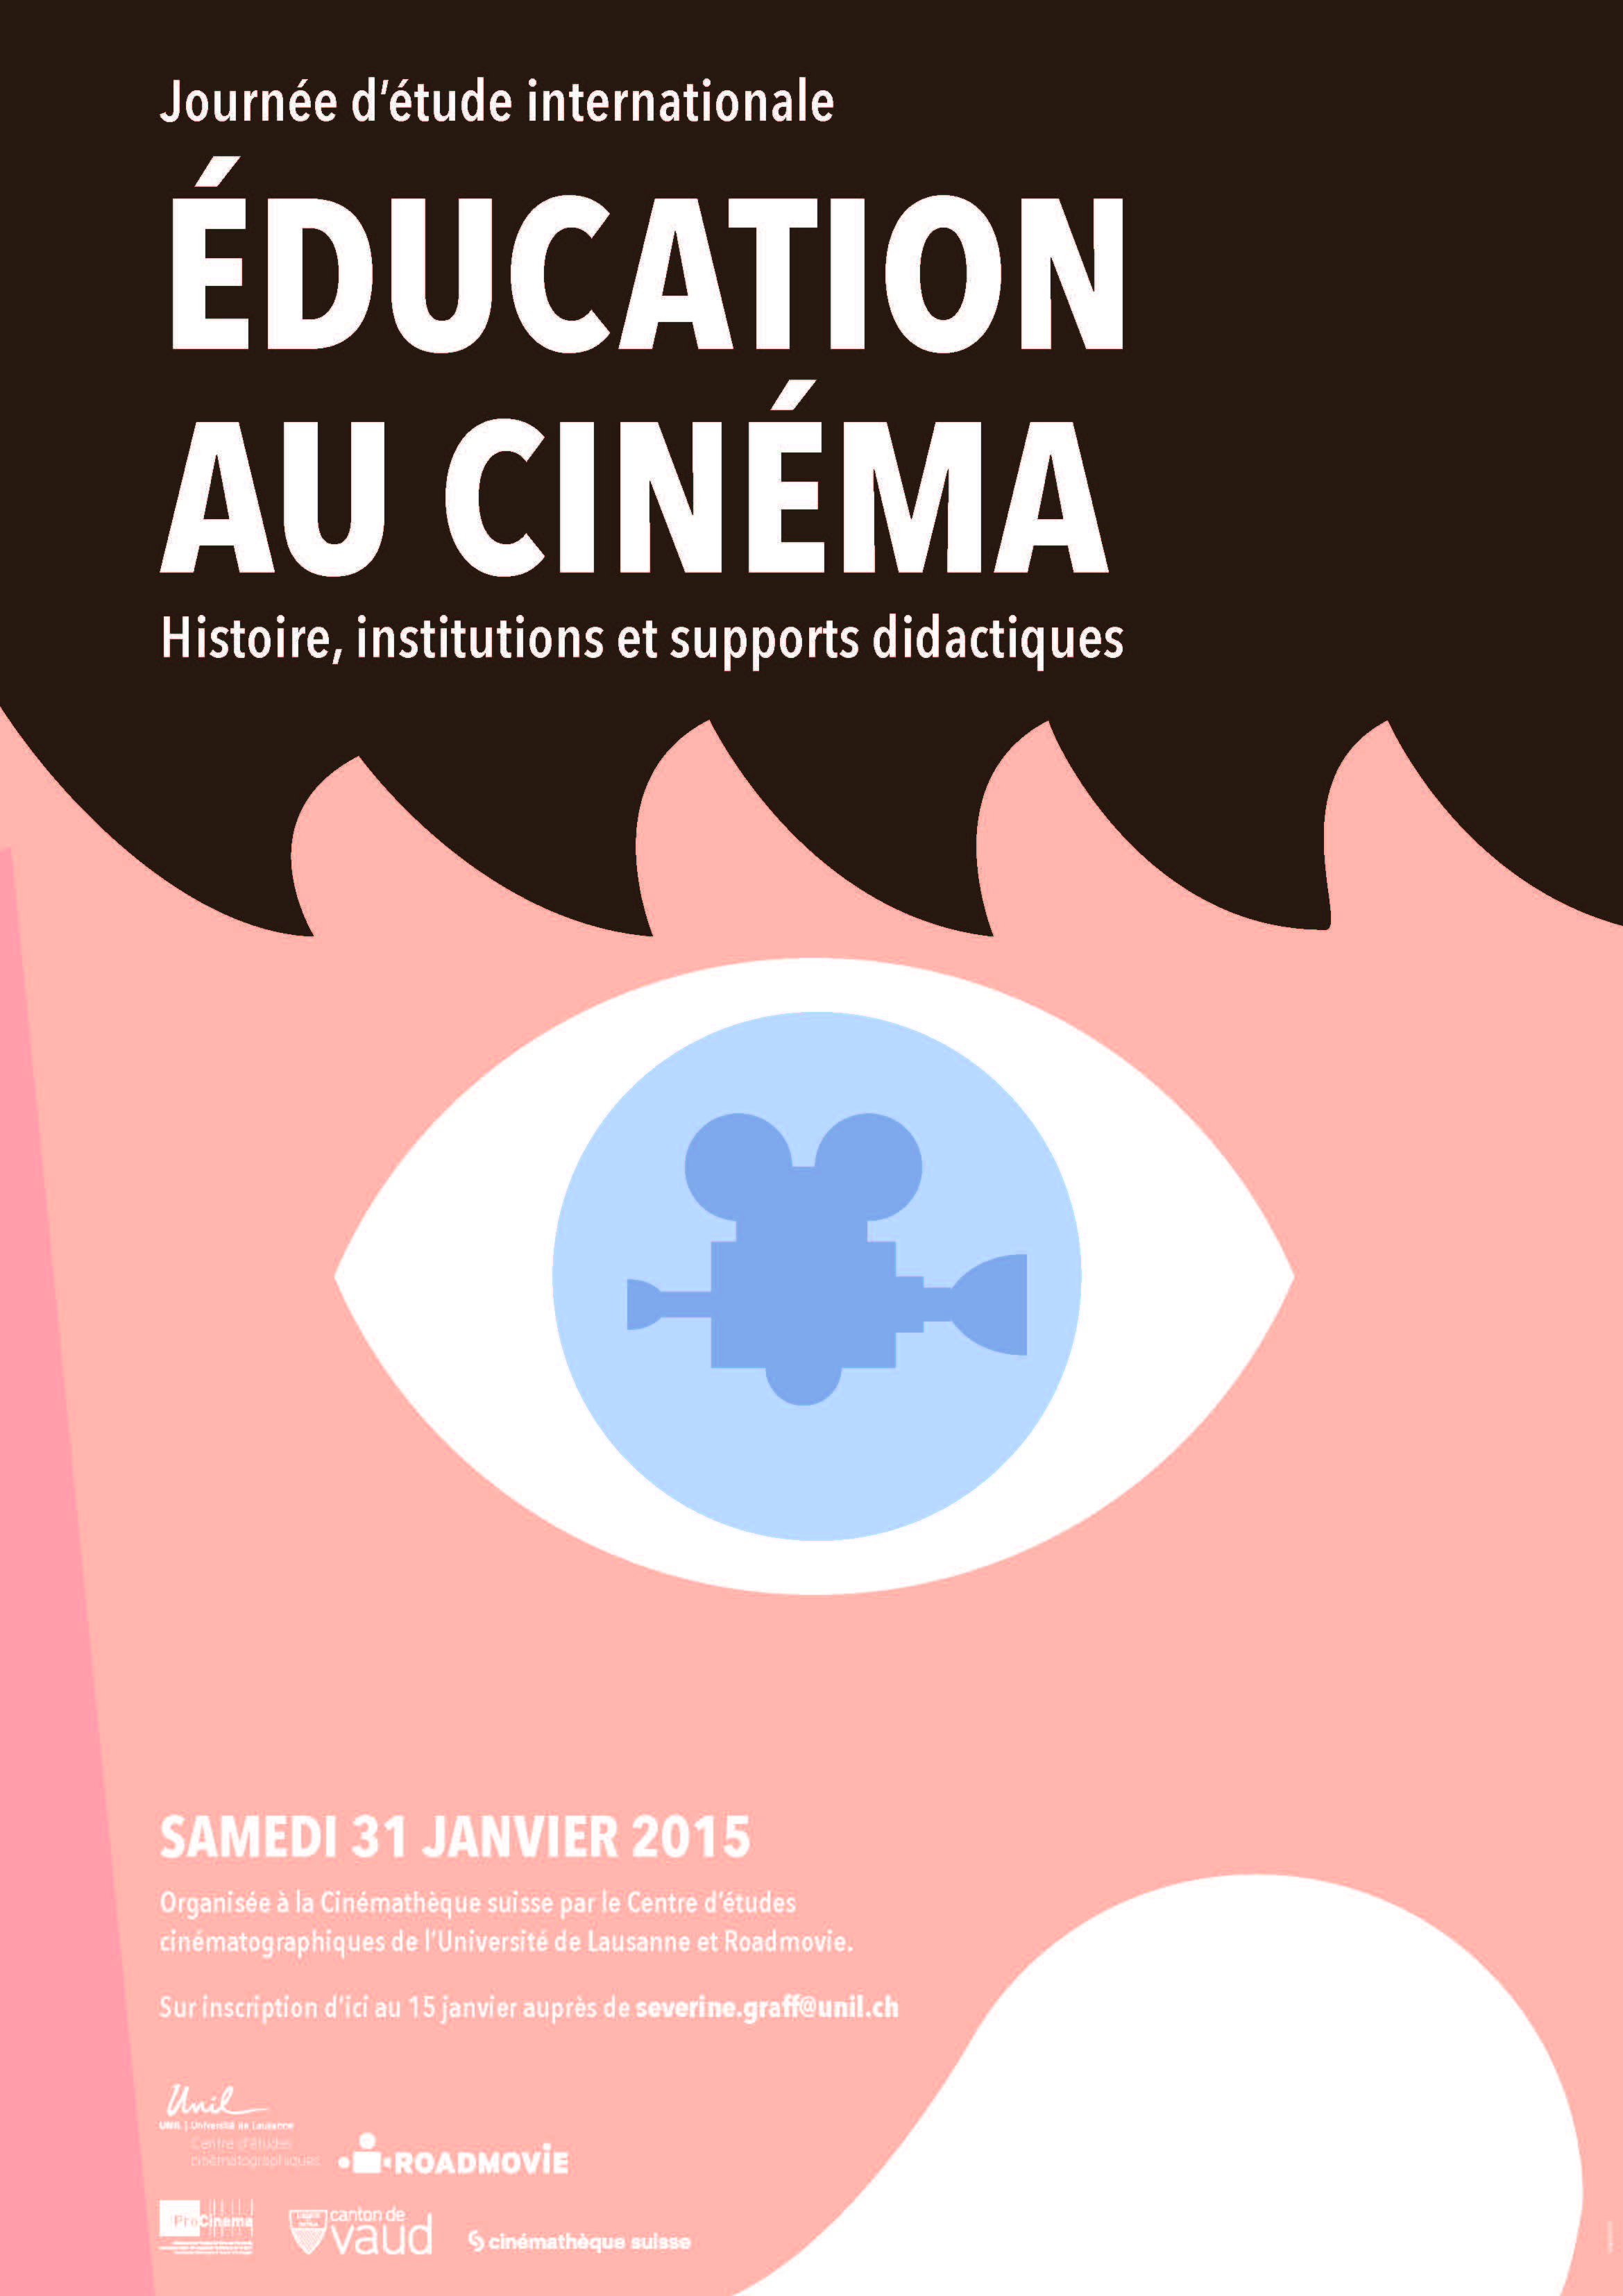 education au cinema_affiche_A3_V2.jpg